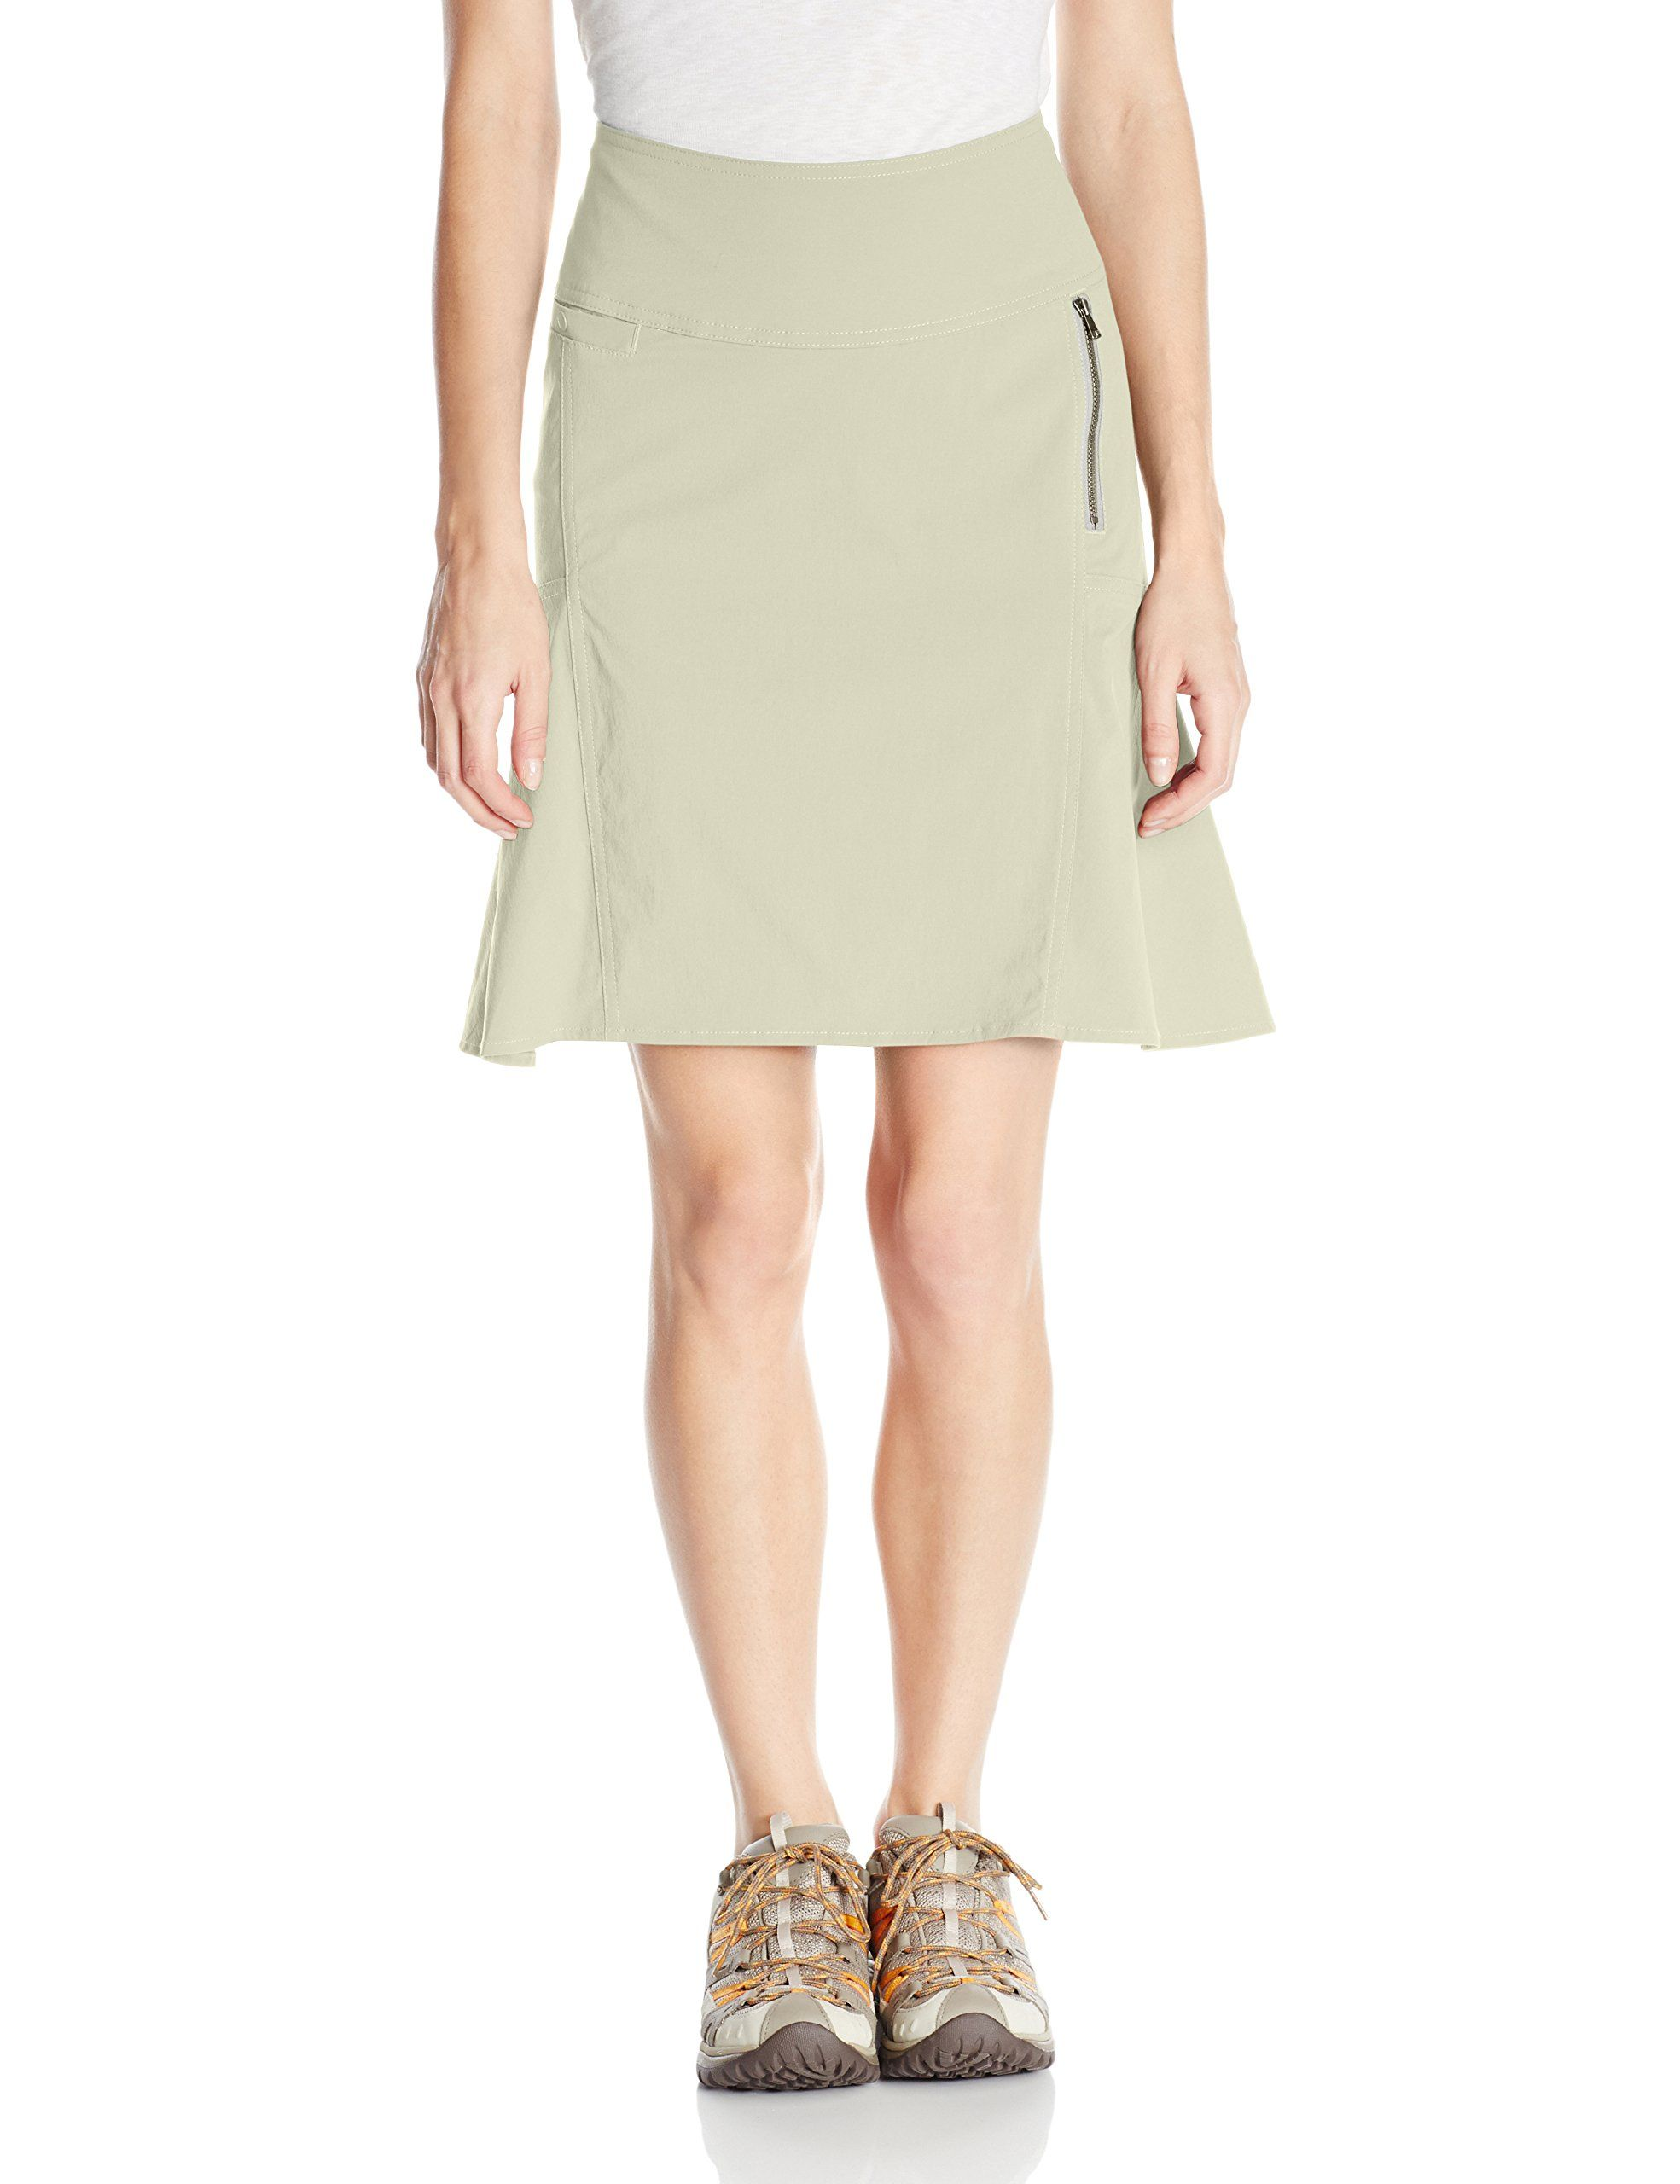 Royal Robbins Women S Essential Rollover Skirt You Can Get More Details By Ing On The Image Active Skirts Athletic